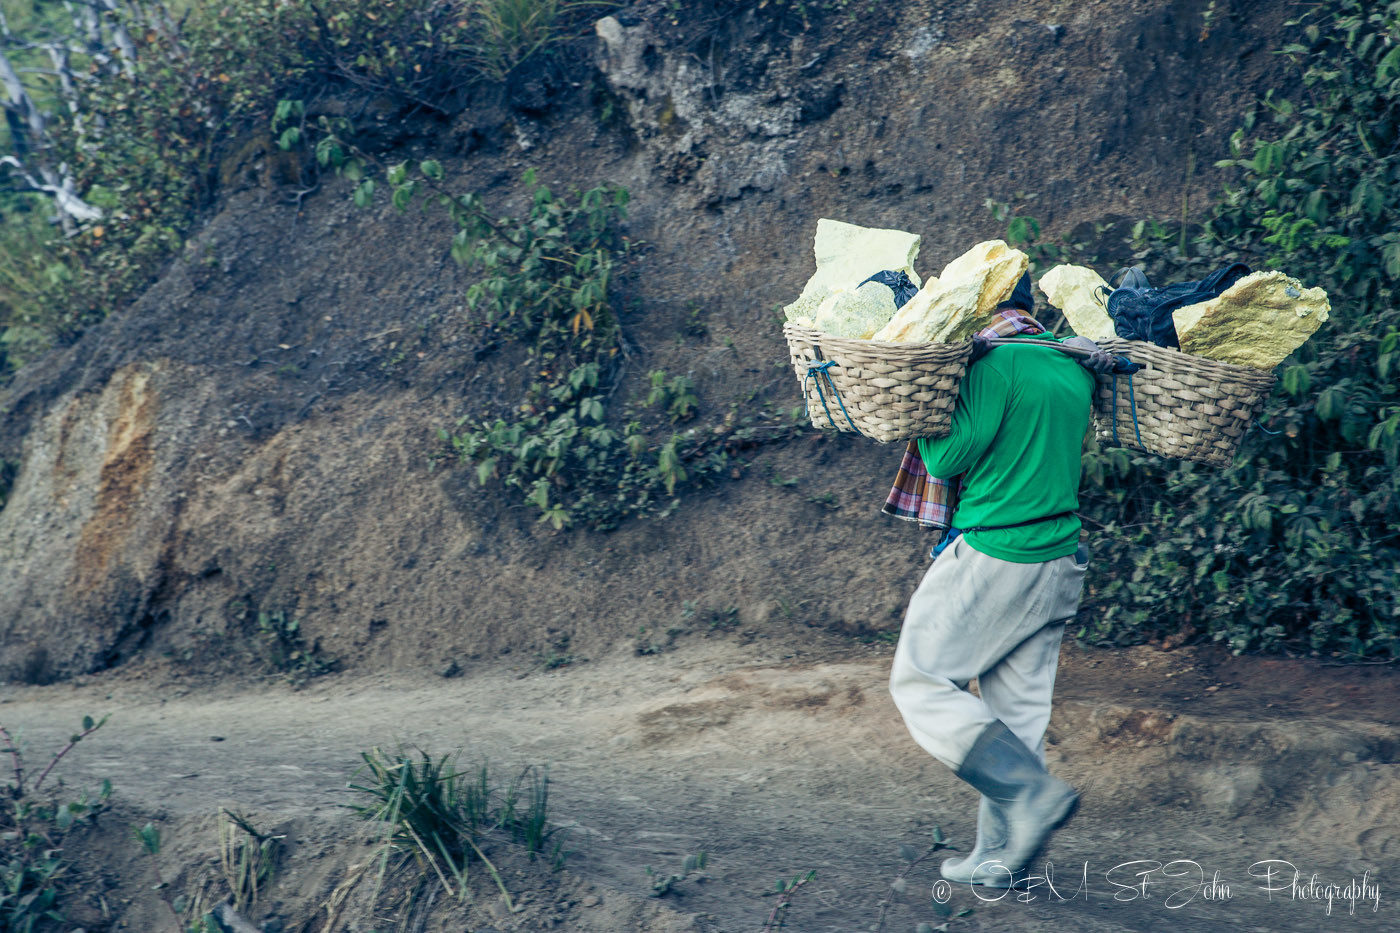 Sulfur miner making his way down with a load of sulfur. Ijen Crater. East Java. Indonesia